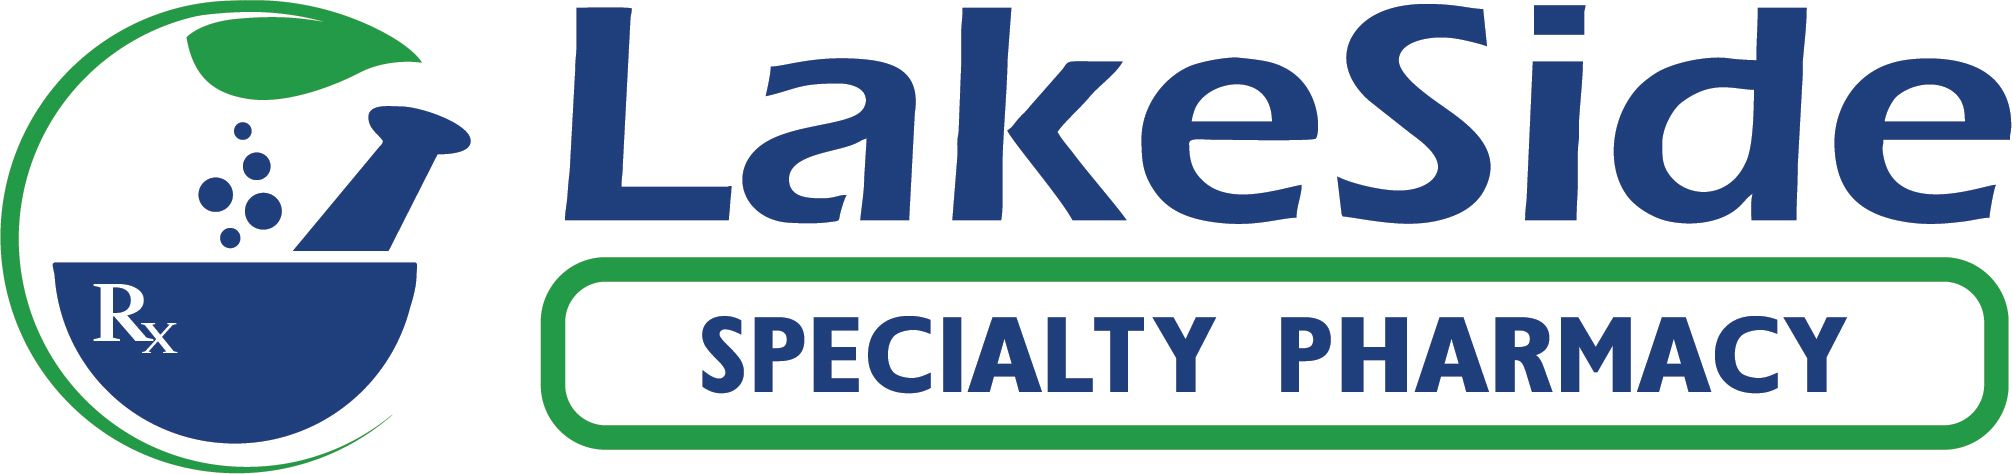 Lakeside Specialty Pharmacy